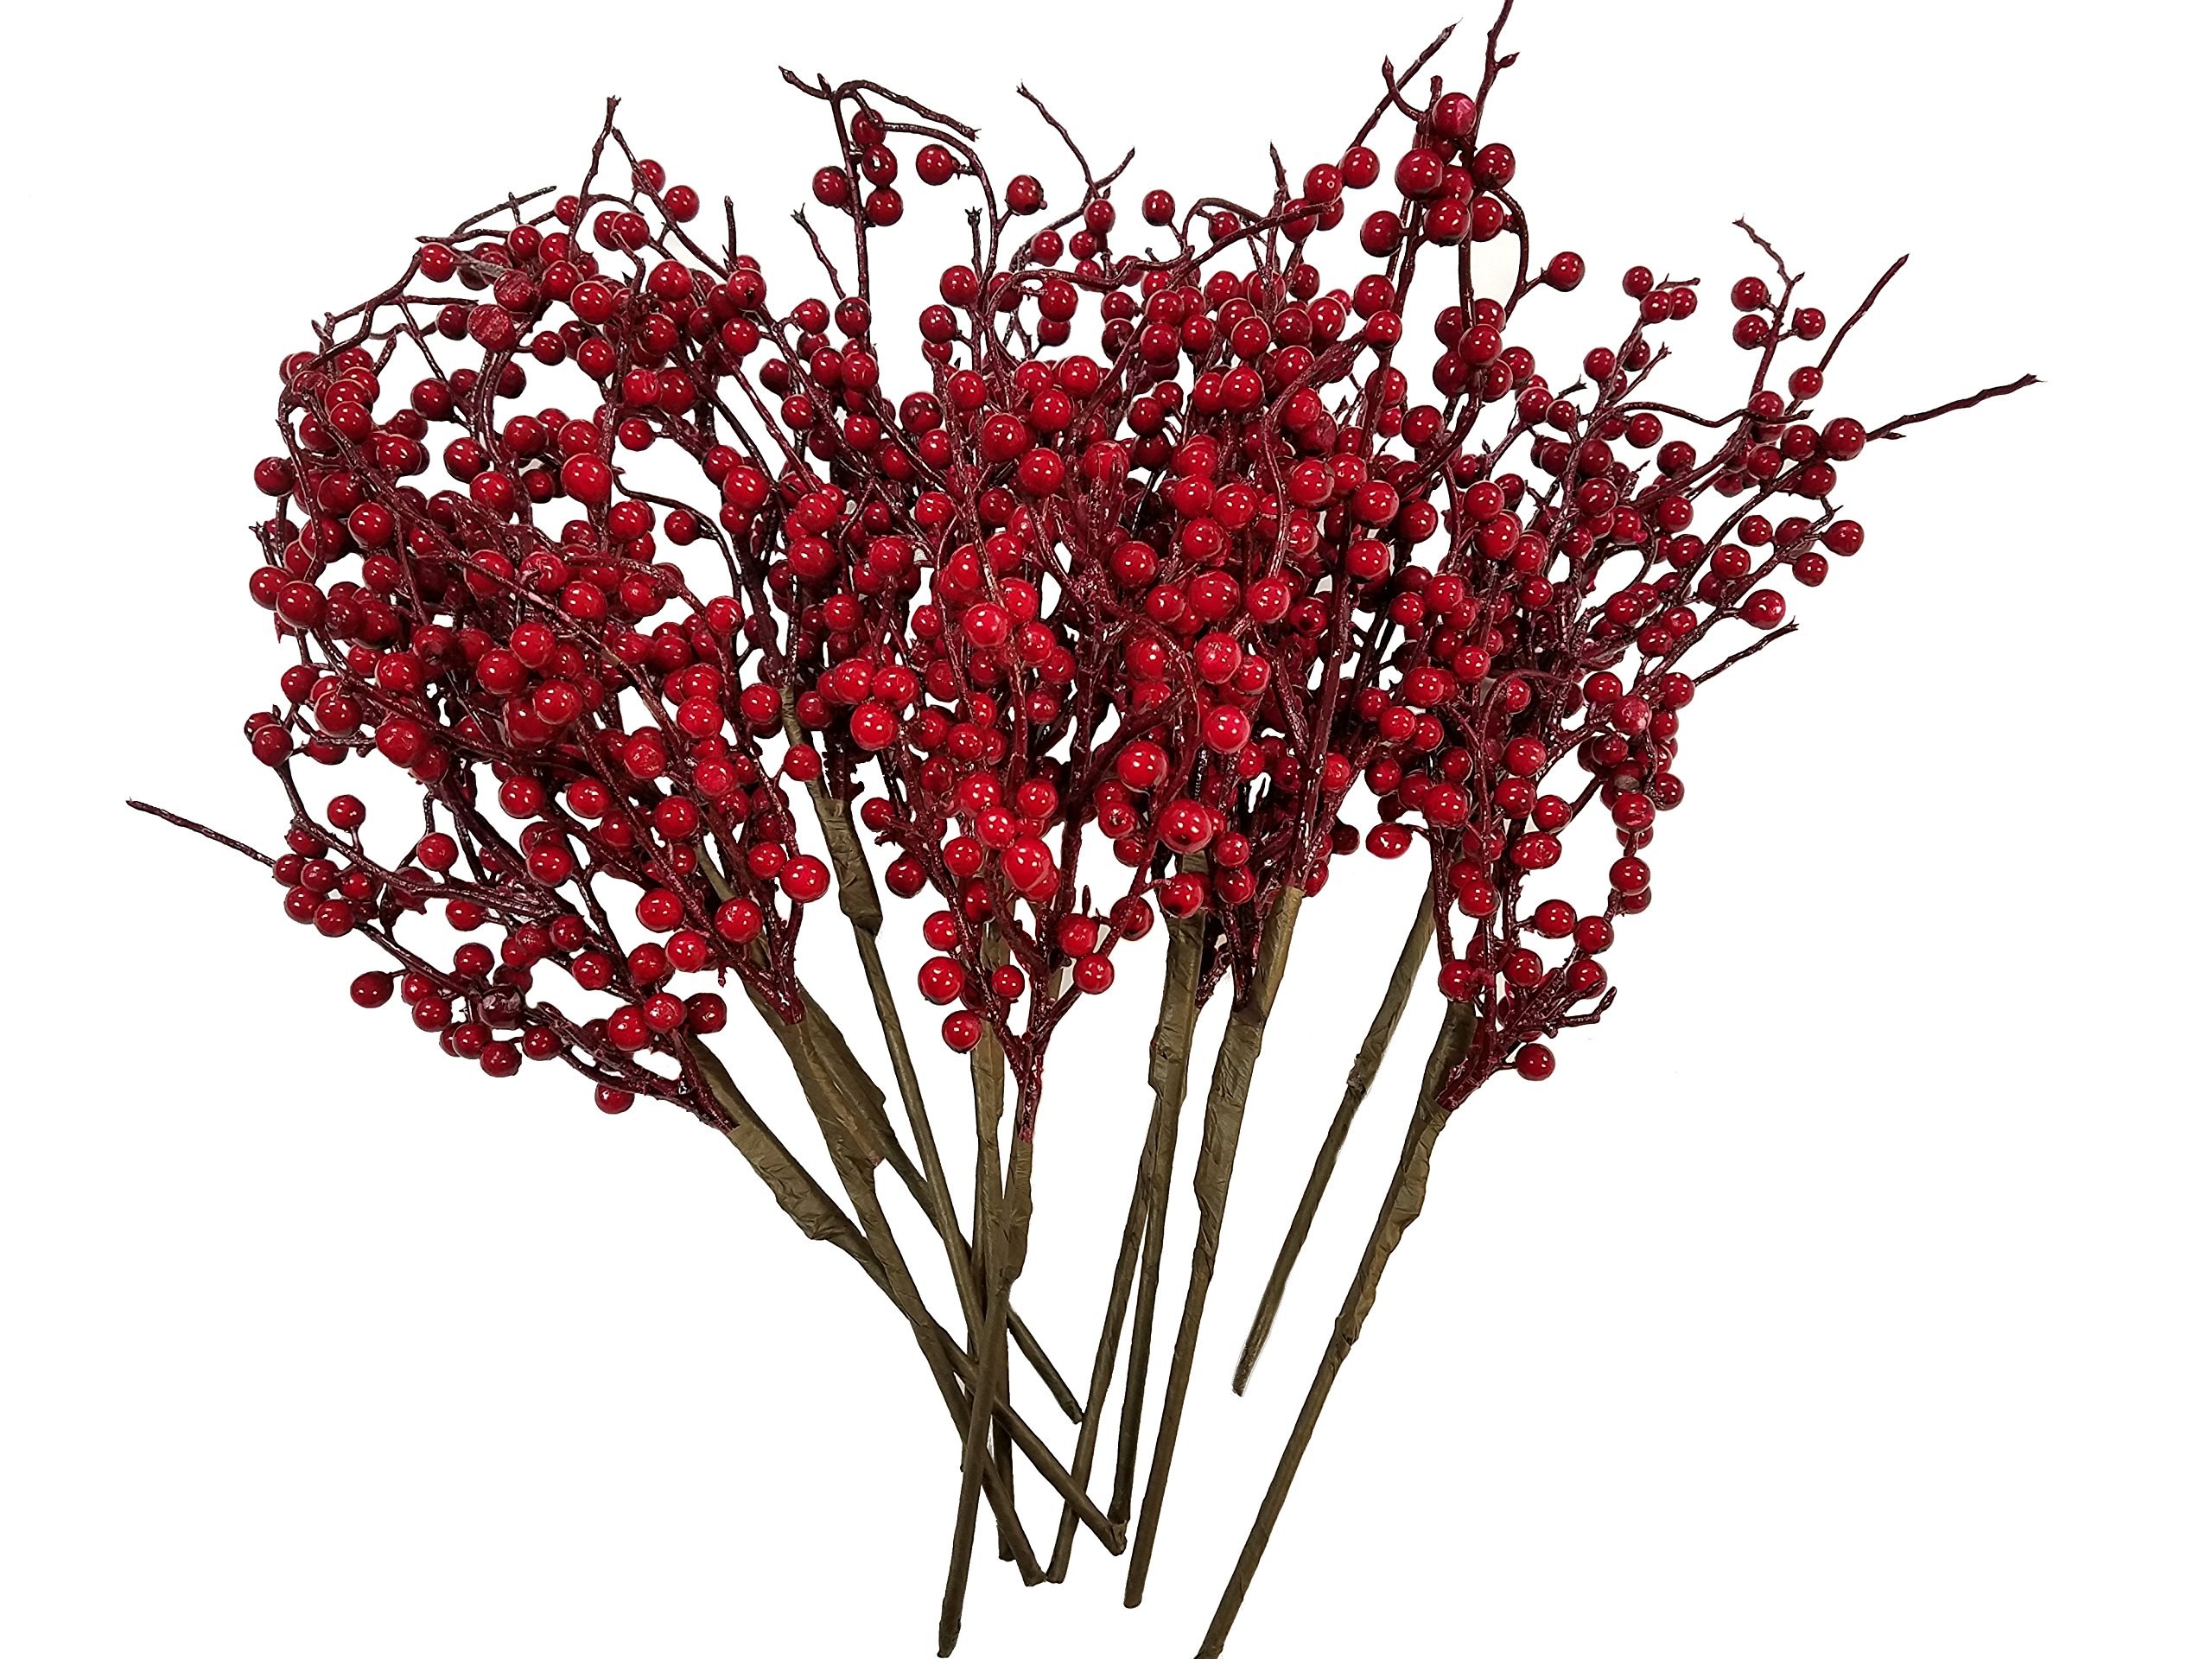 silk flower arrangements craftmore christmas red berry twig stem, 16 inch, set of 12